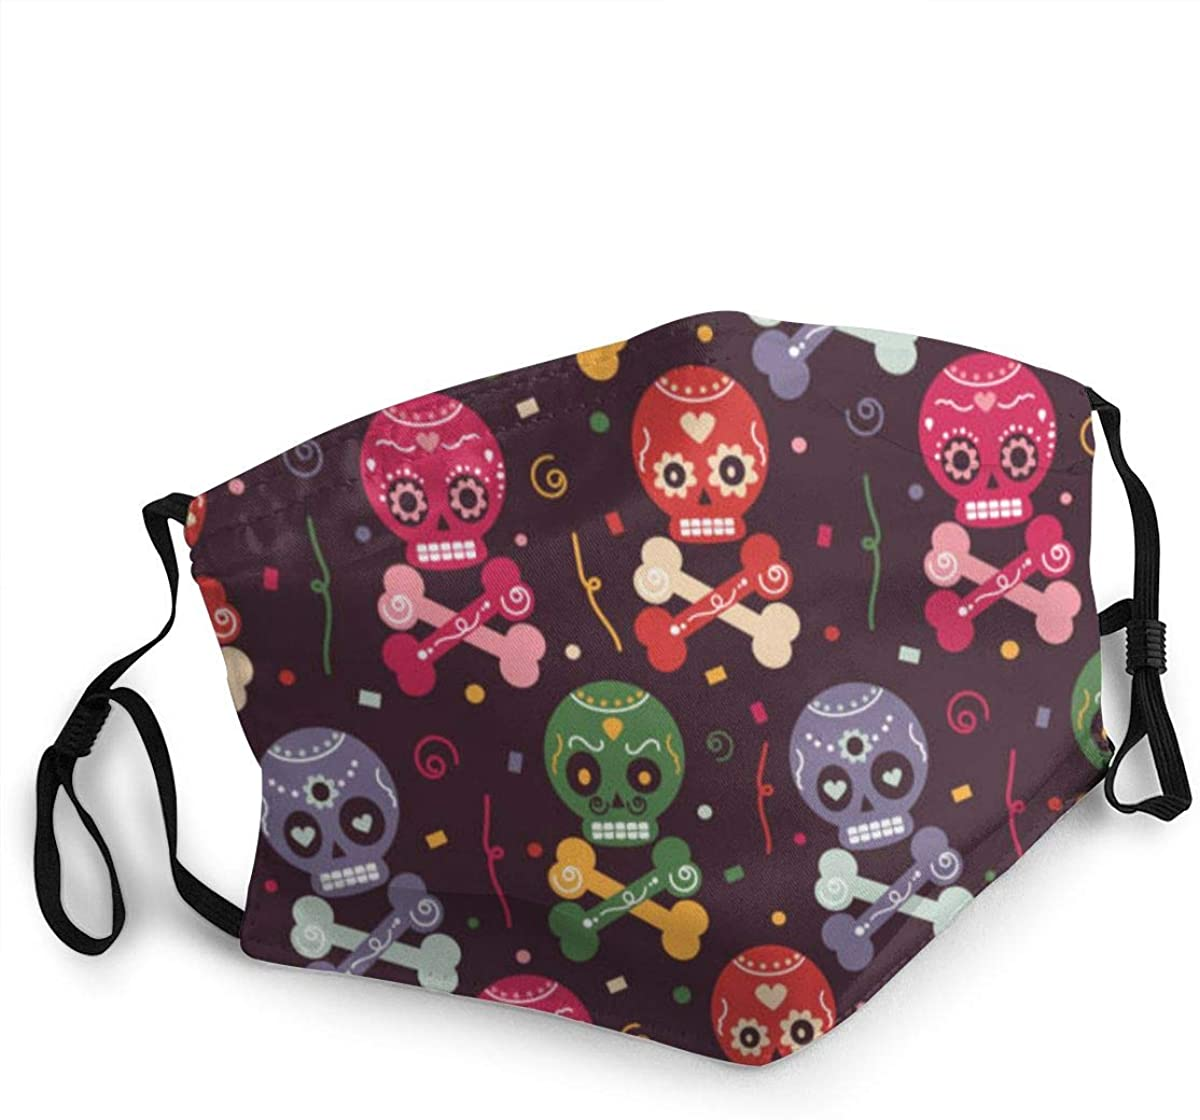 Fashion Washable Reusable Mouth Mask Cute Colorful Mexican Skull Adjustable Protective Face Cover with Dust Filter Pocket